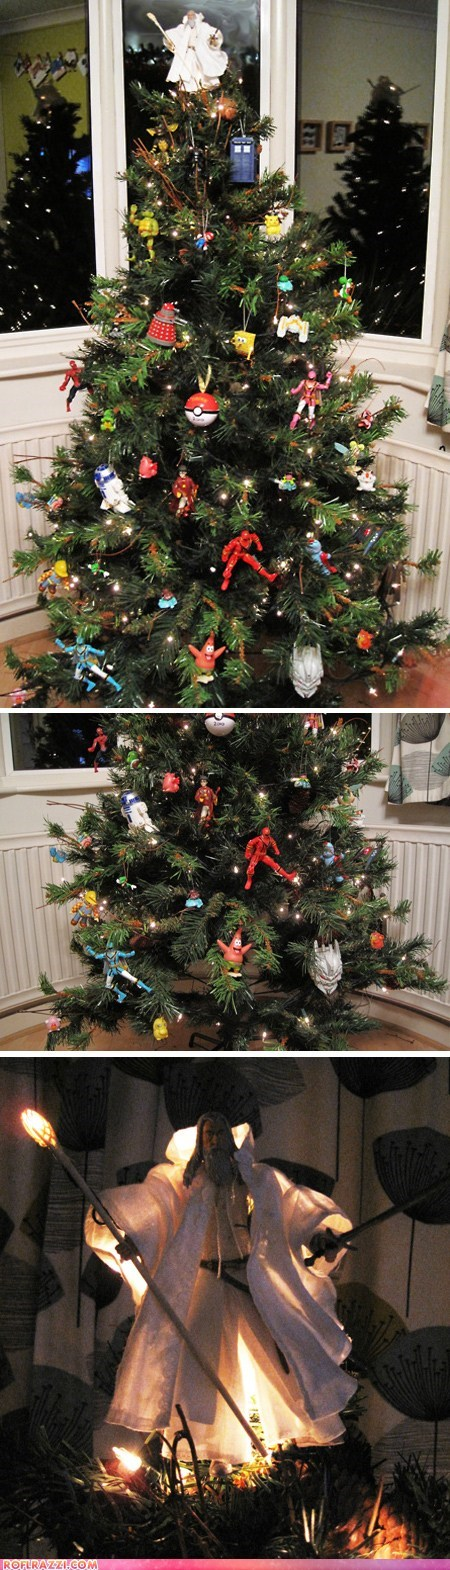 Pop Culture Christmas Tree